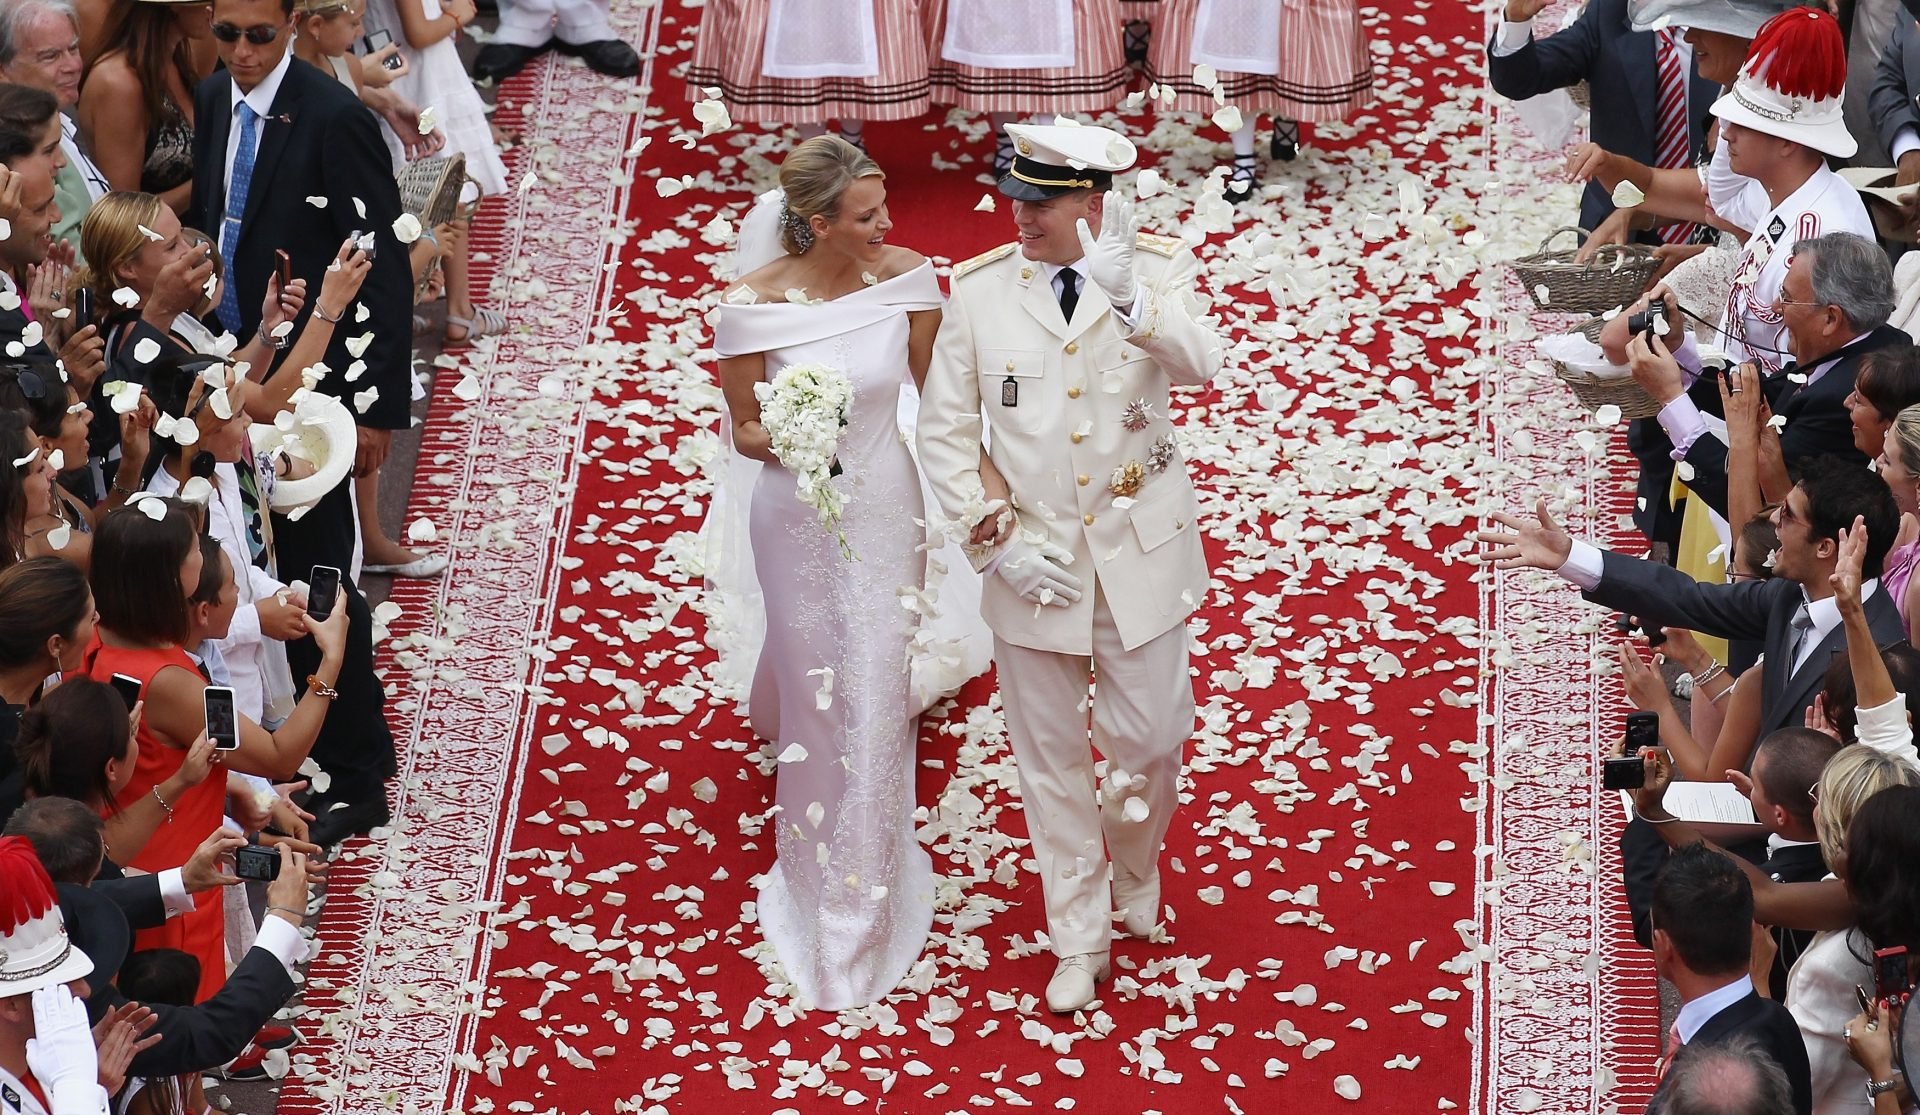 The lavish wedding of Albert to Charlene cost a rumoured m, with celebrations running several days and night. Photo: Andreas Rentz/Getty Images